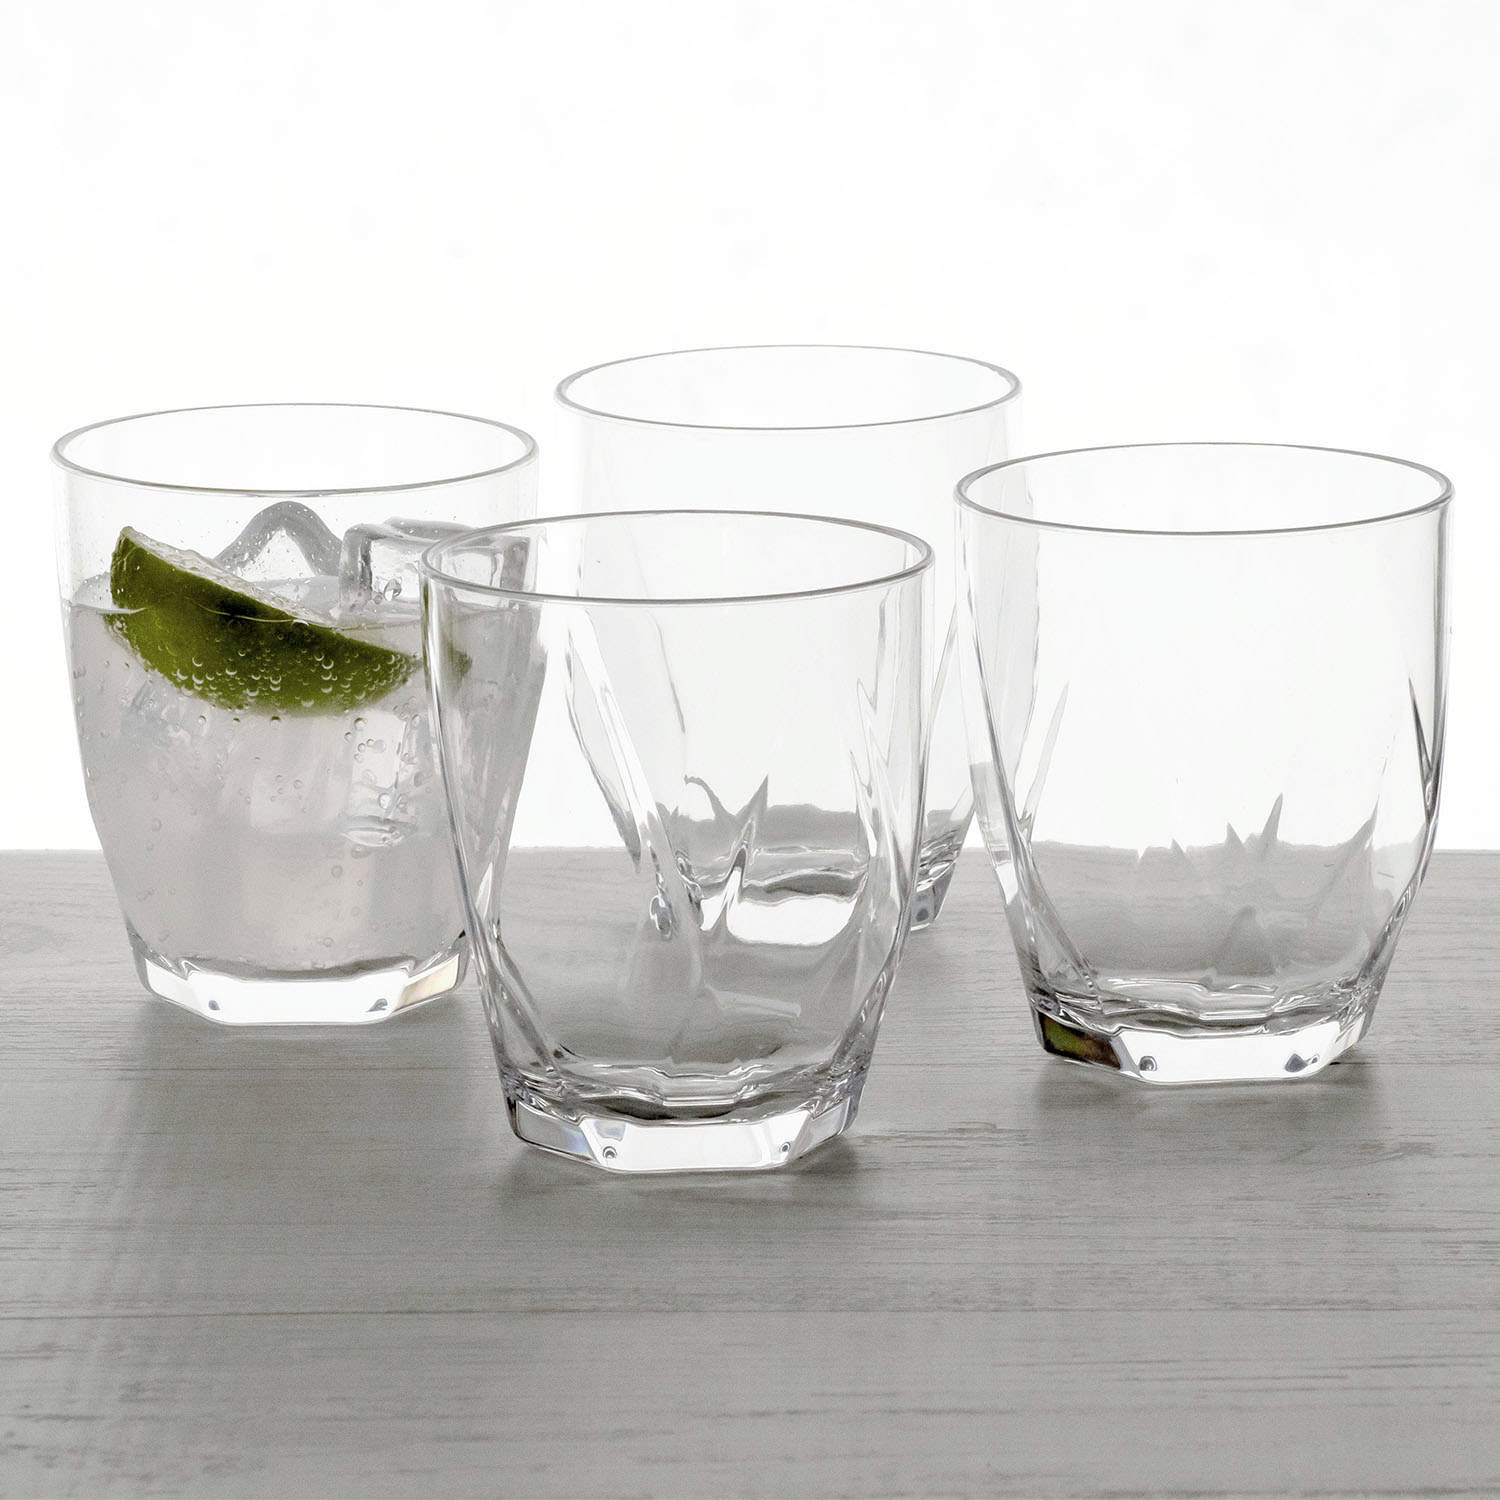 four old fashioned glasses with a vodka soda in one of them